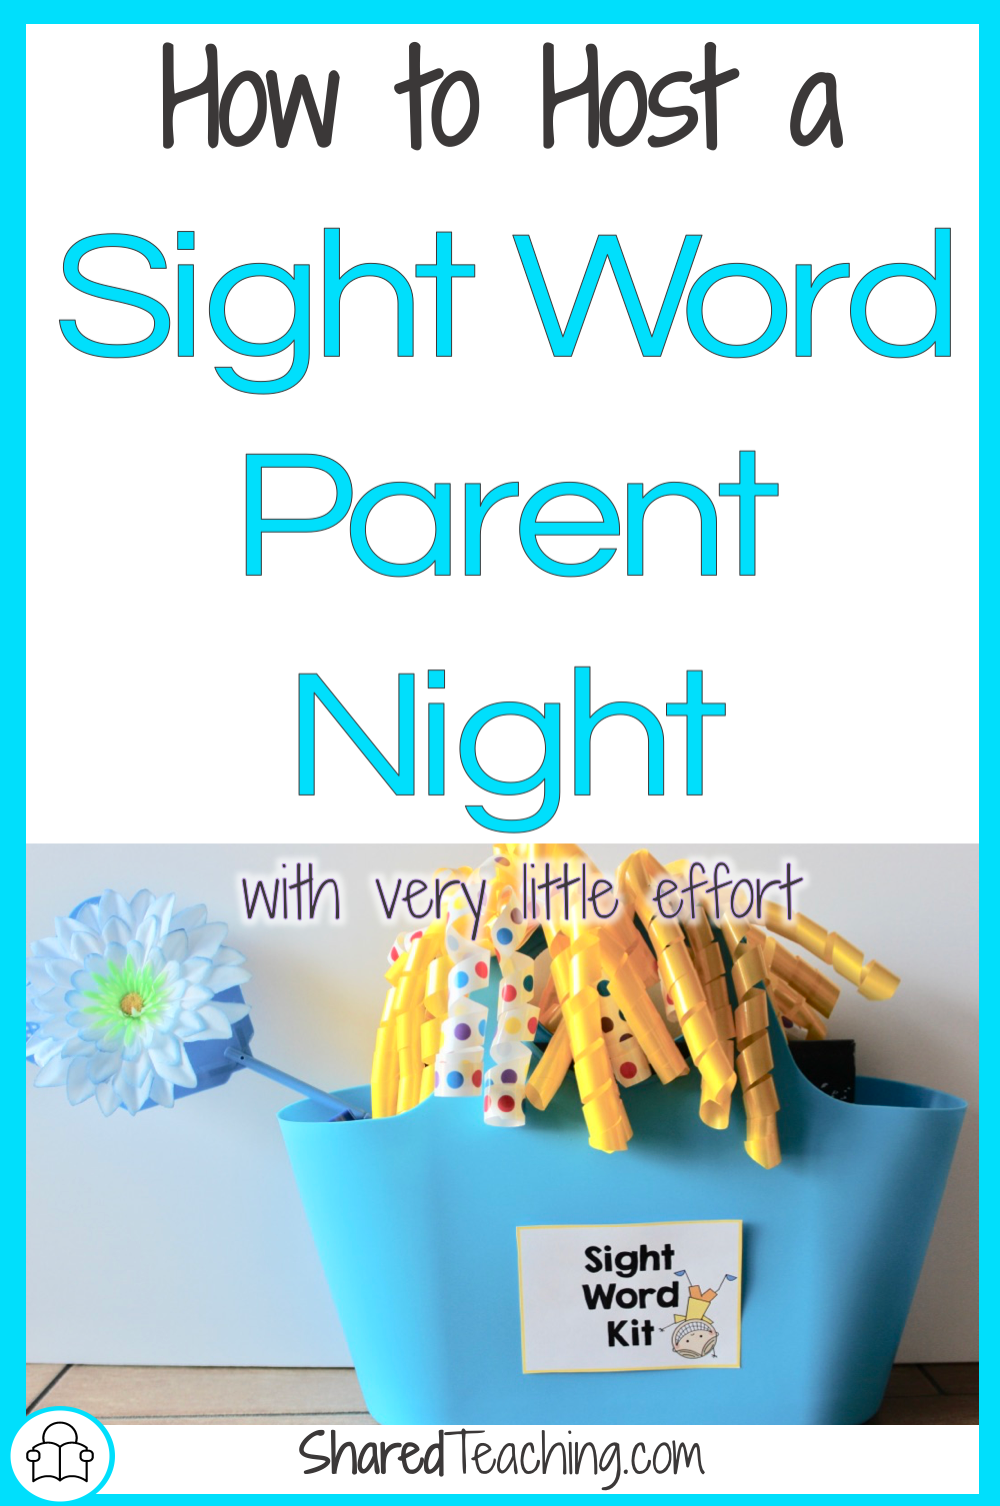 Host a sight word parent night with little effort that will have your principal and families remembering it all year!